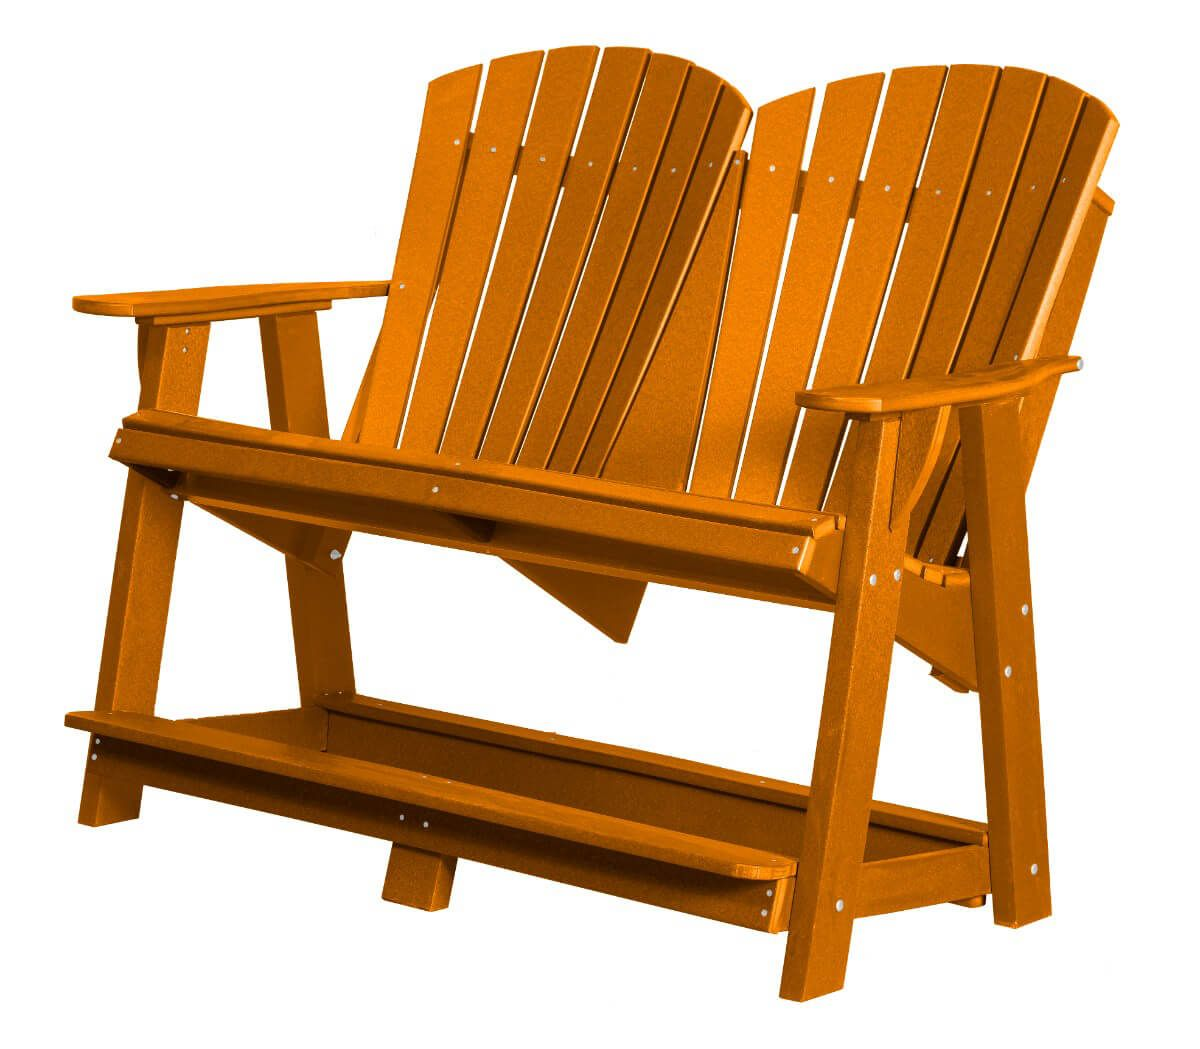 Bright Orange Sidra Double High Adirondack